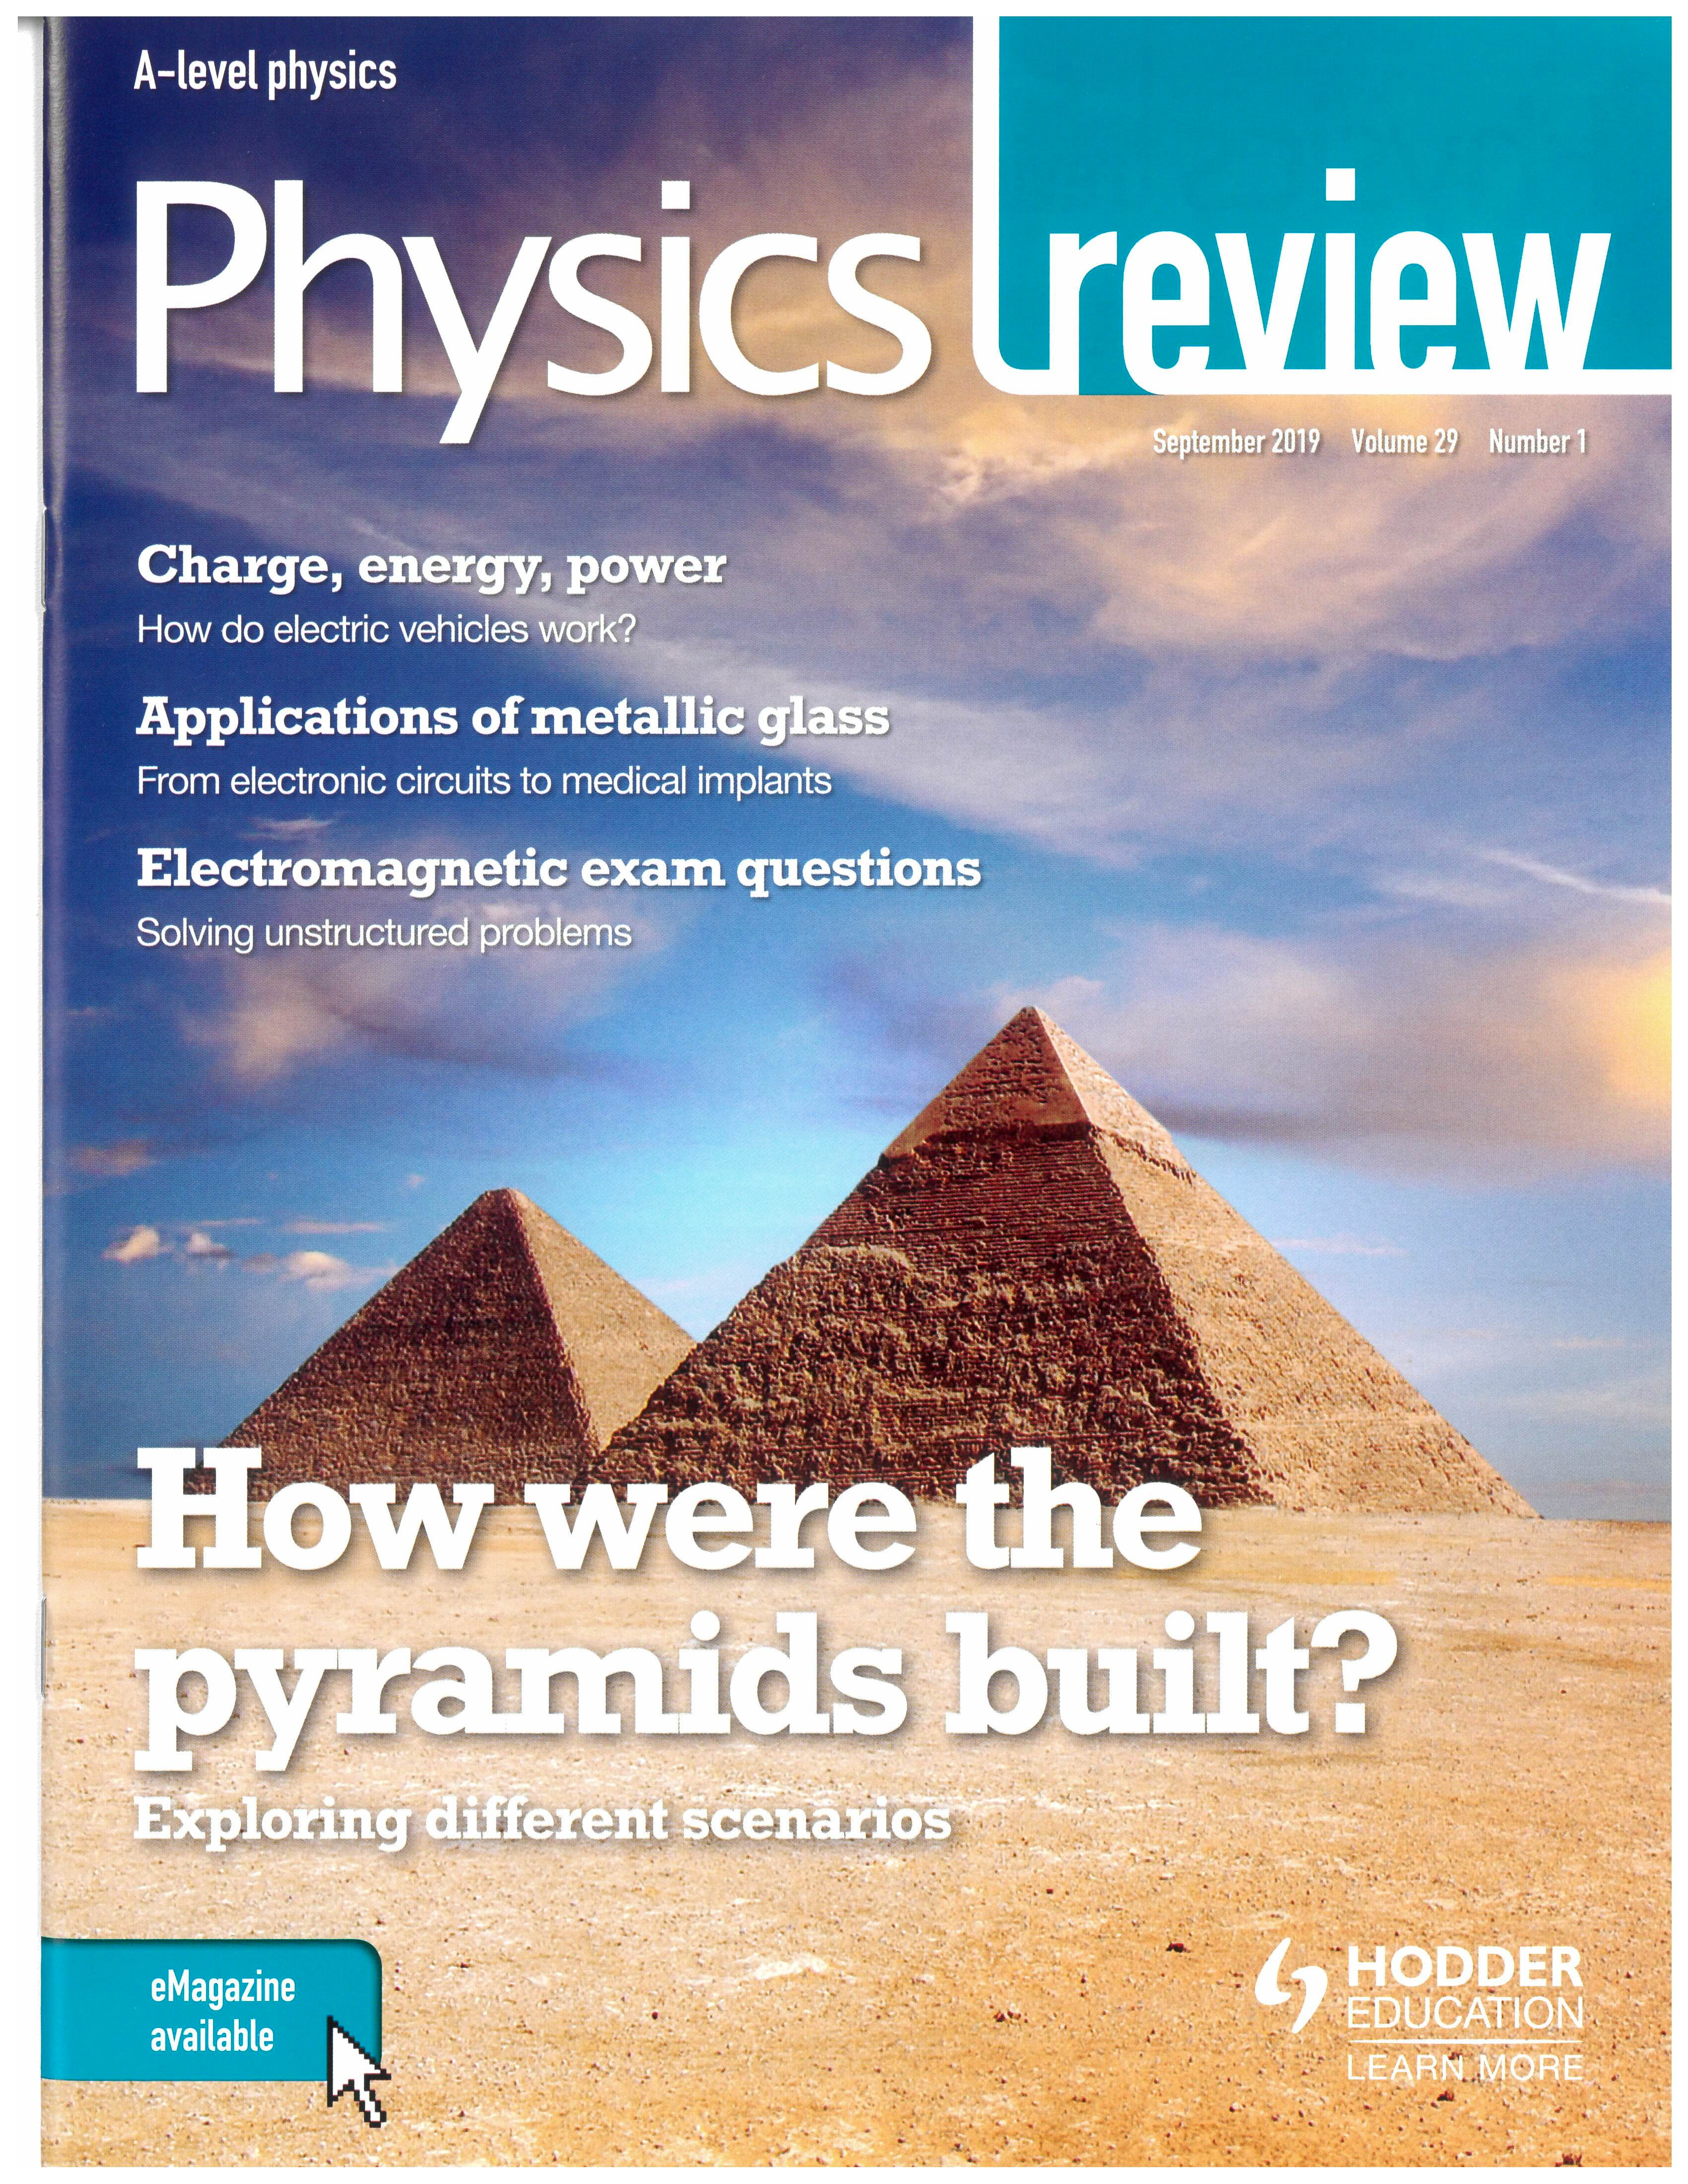 Image: Physics Review front cover